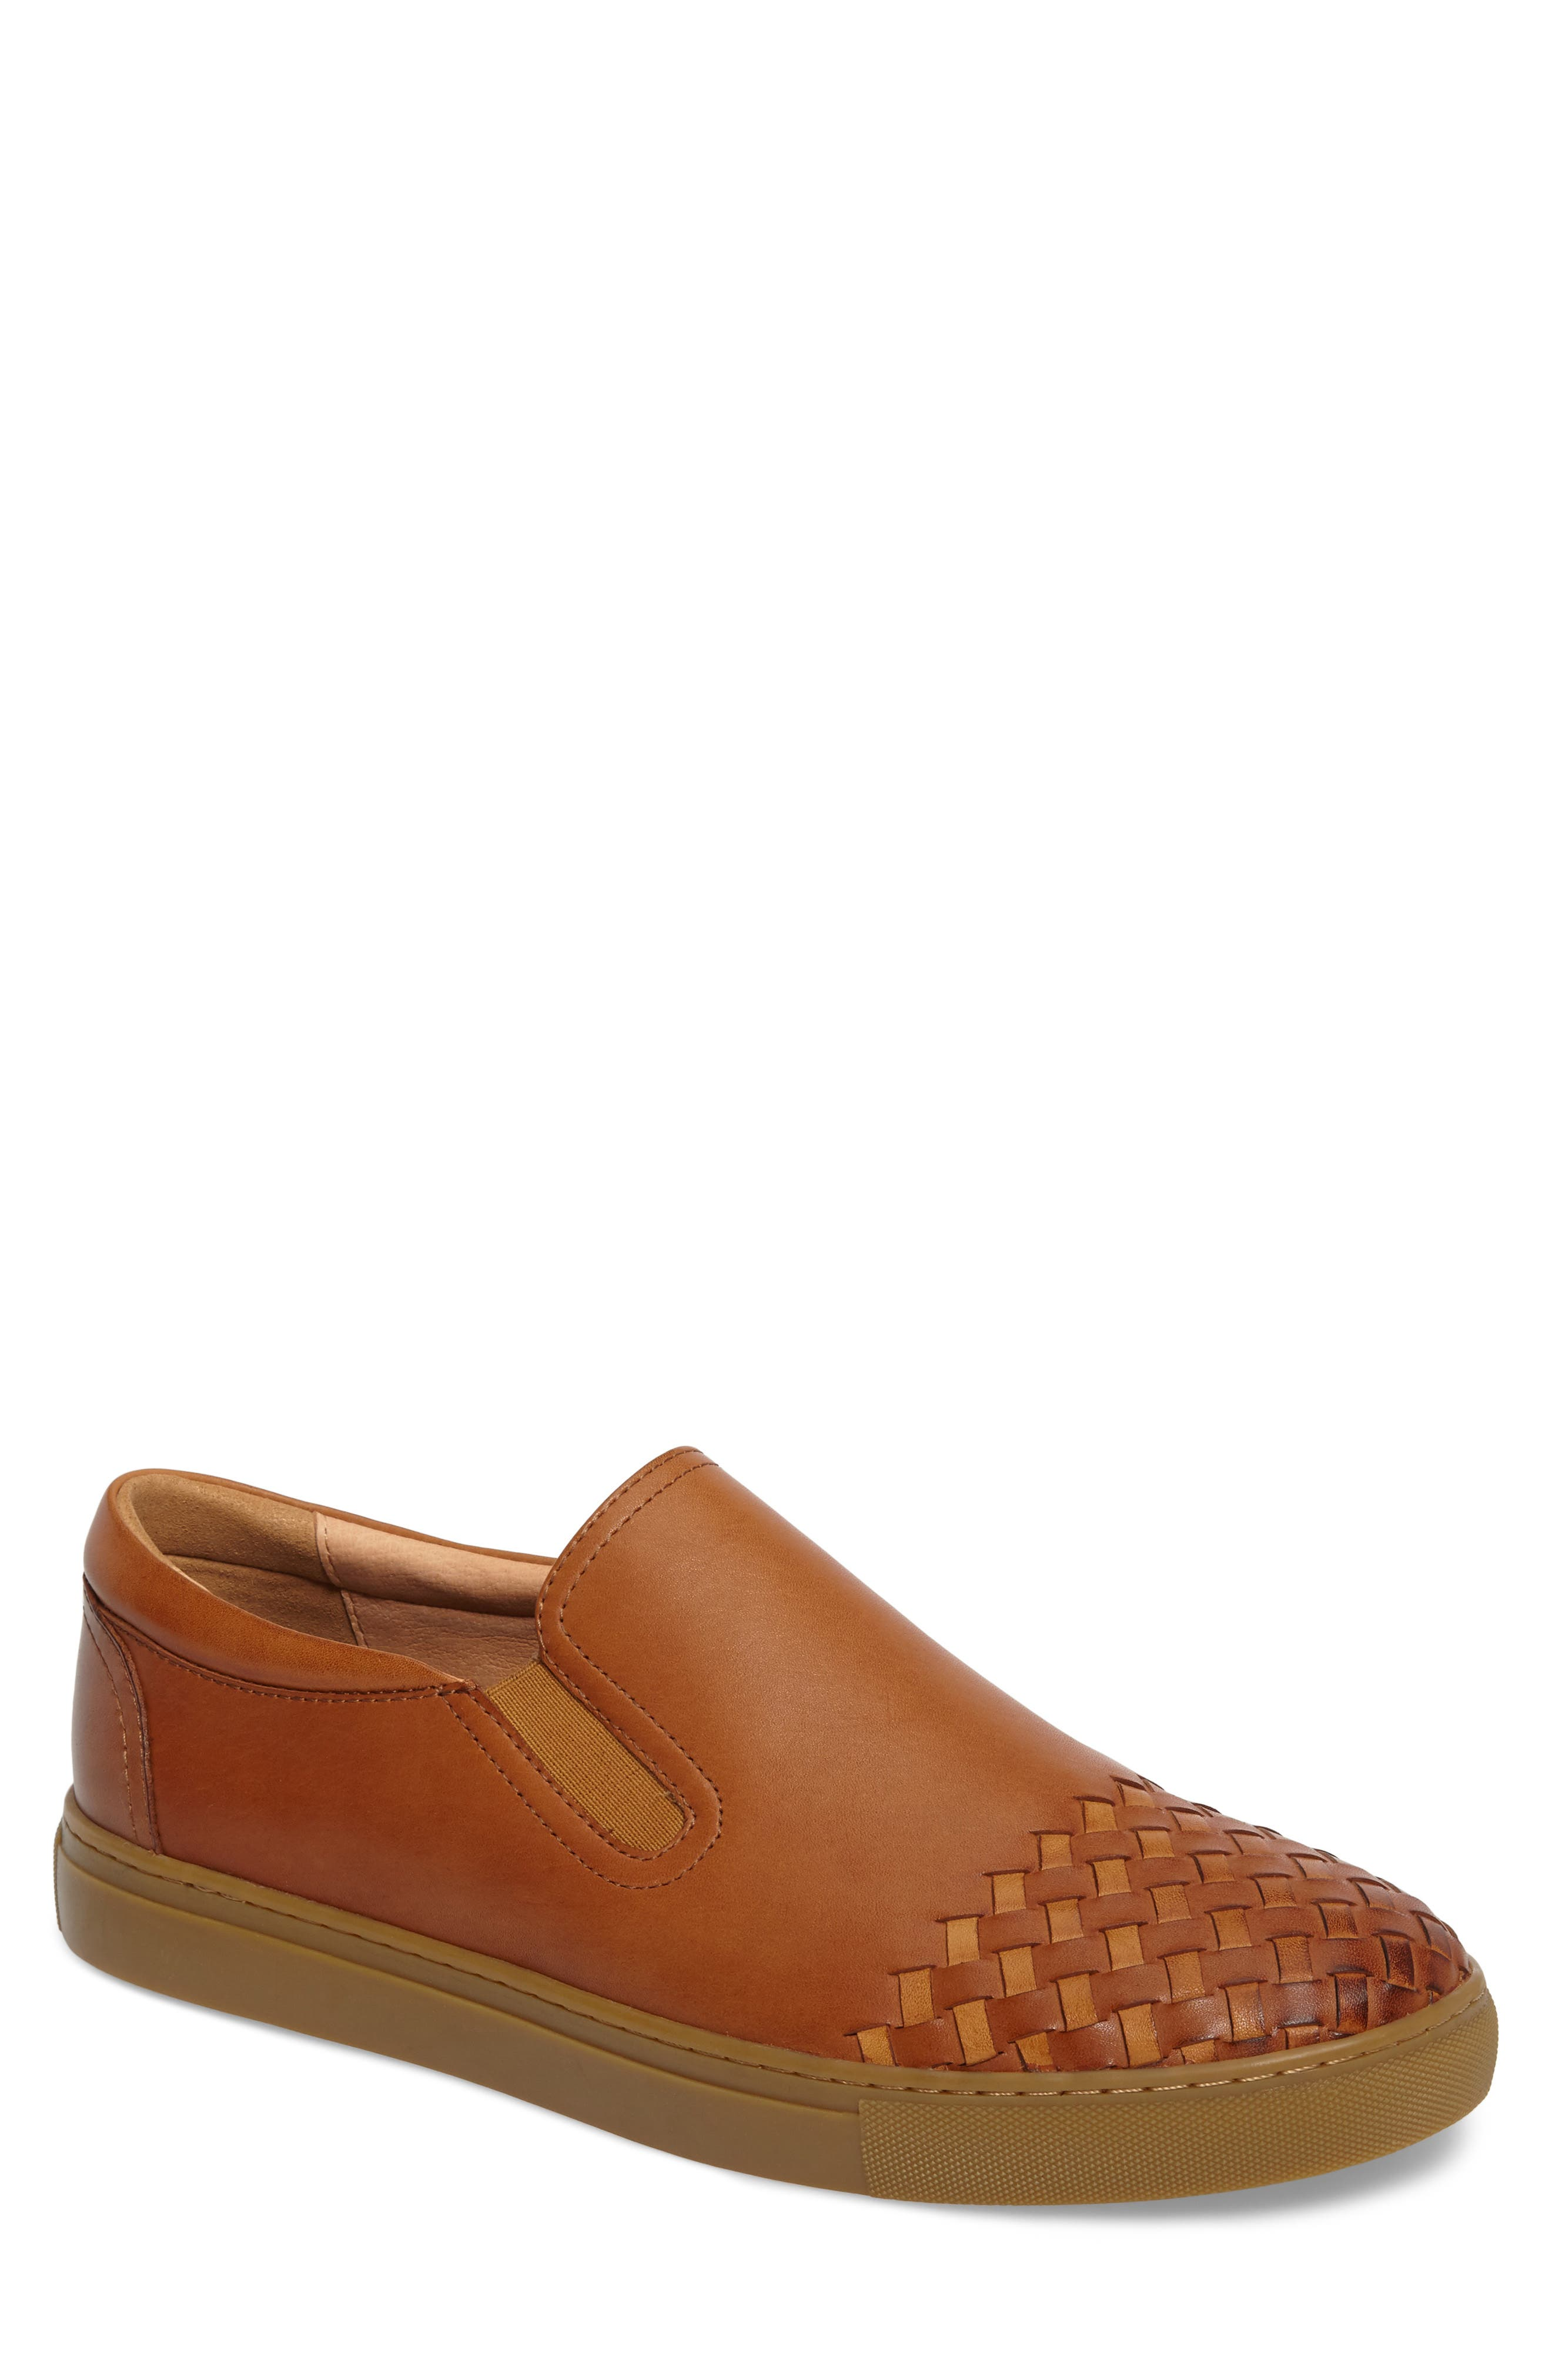 Ader Slip-On,                         Main,                         color, Cognac Leather